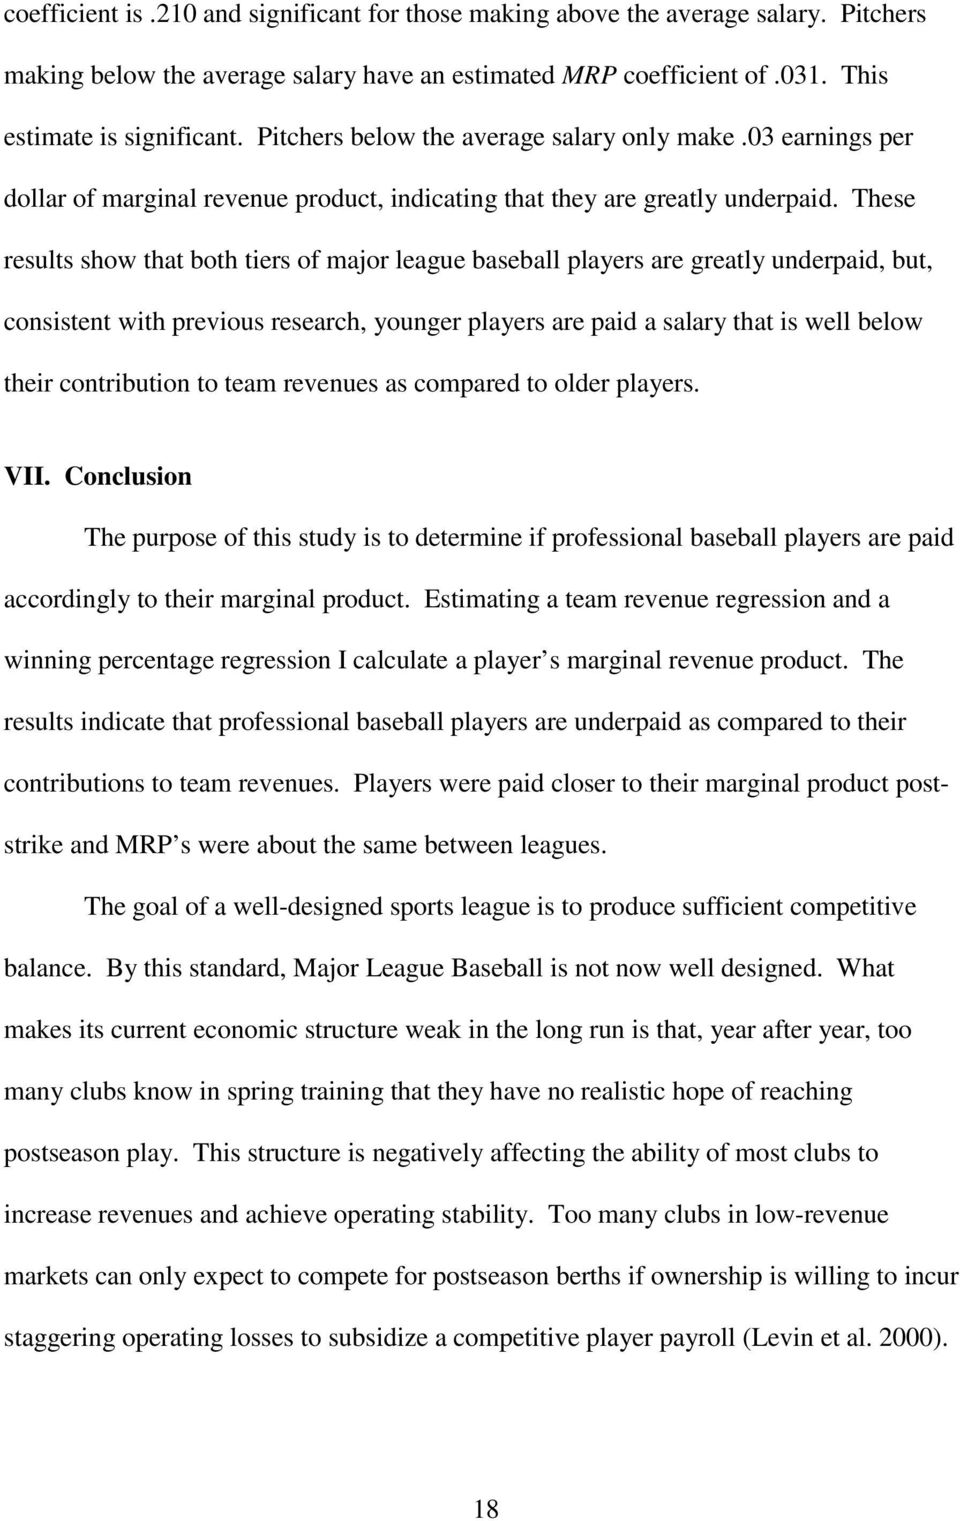 These results show that both tiers of major league baseball players are greatly underpaid, but, consistent with previous research, younger players are paid a salary that is well below their